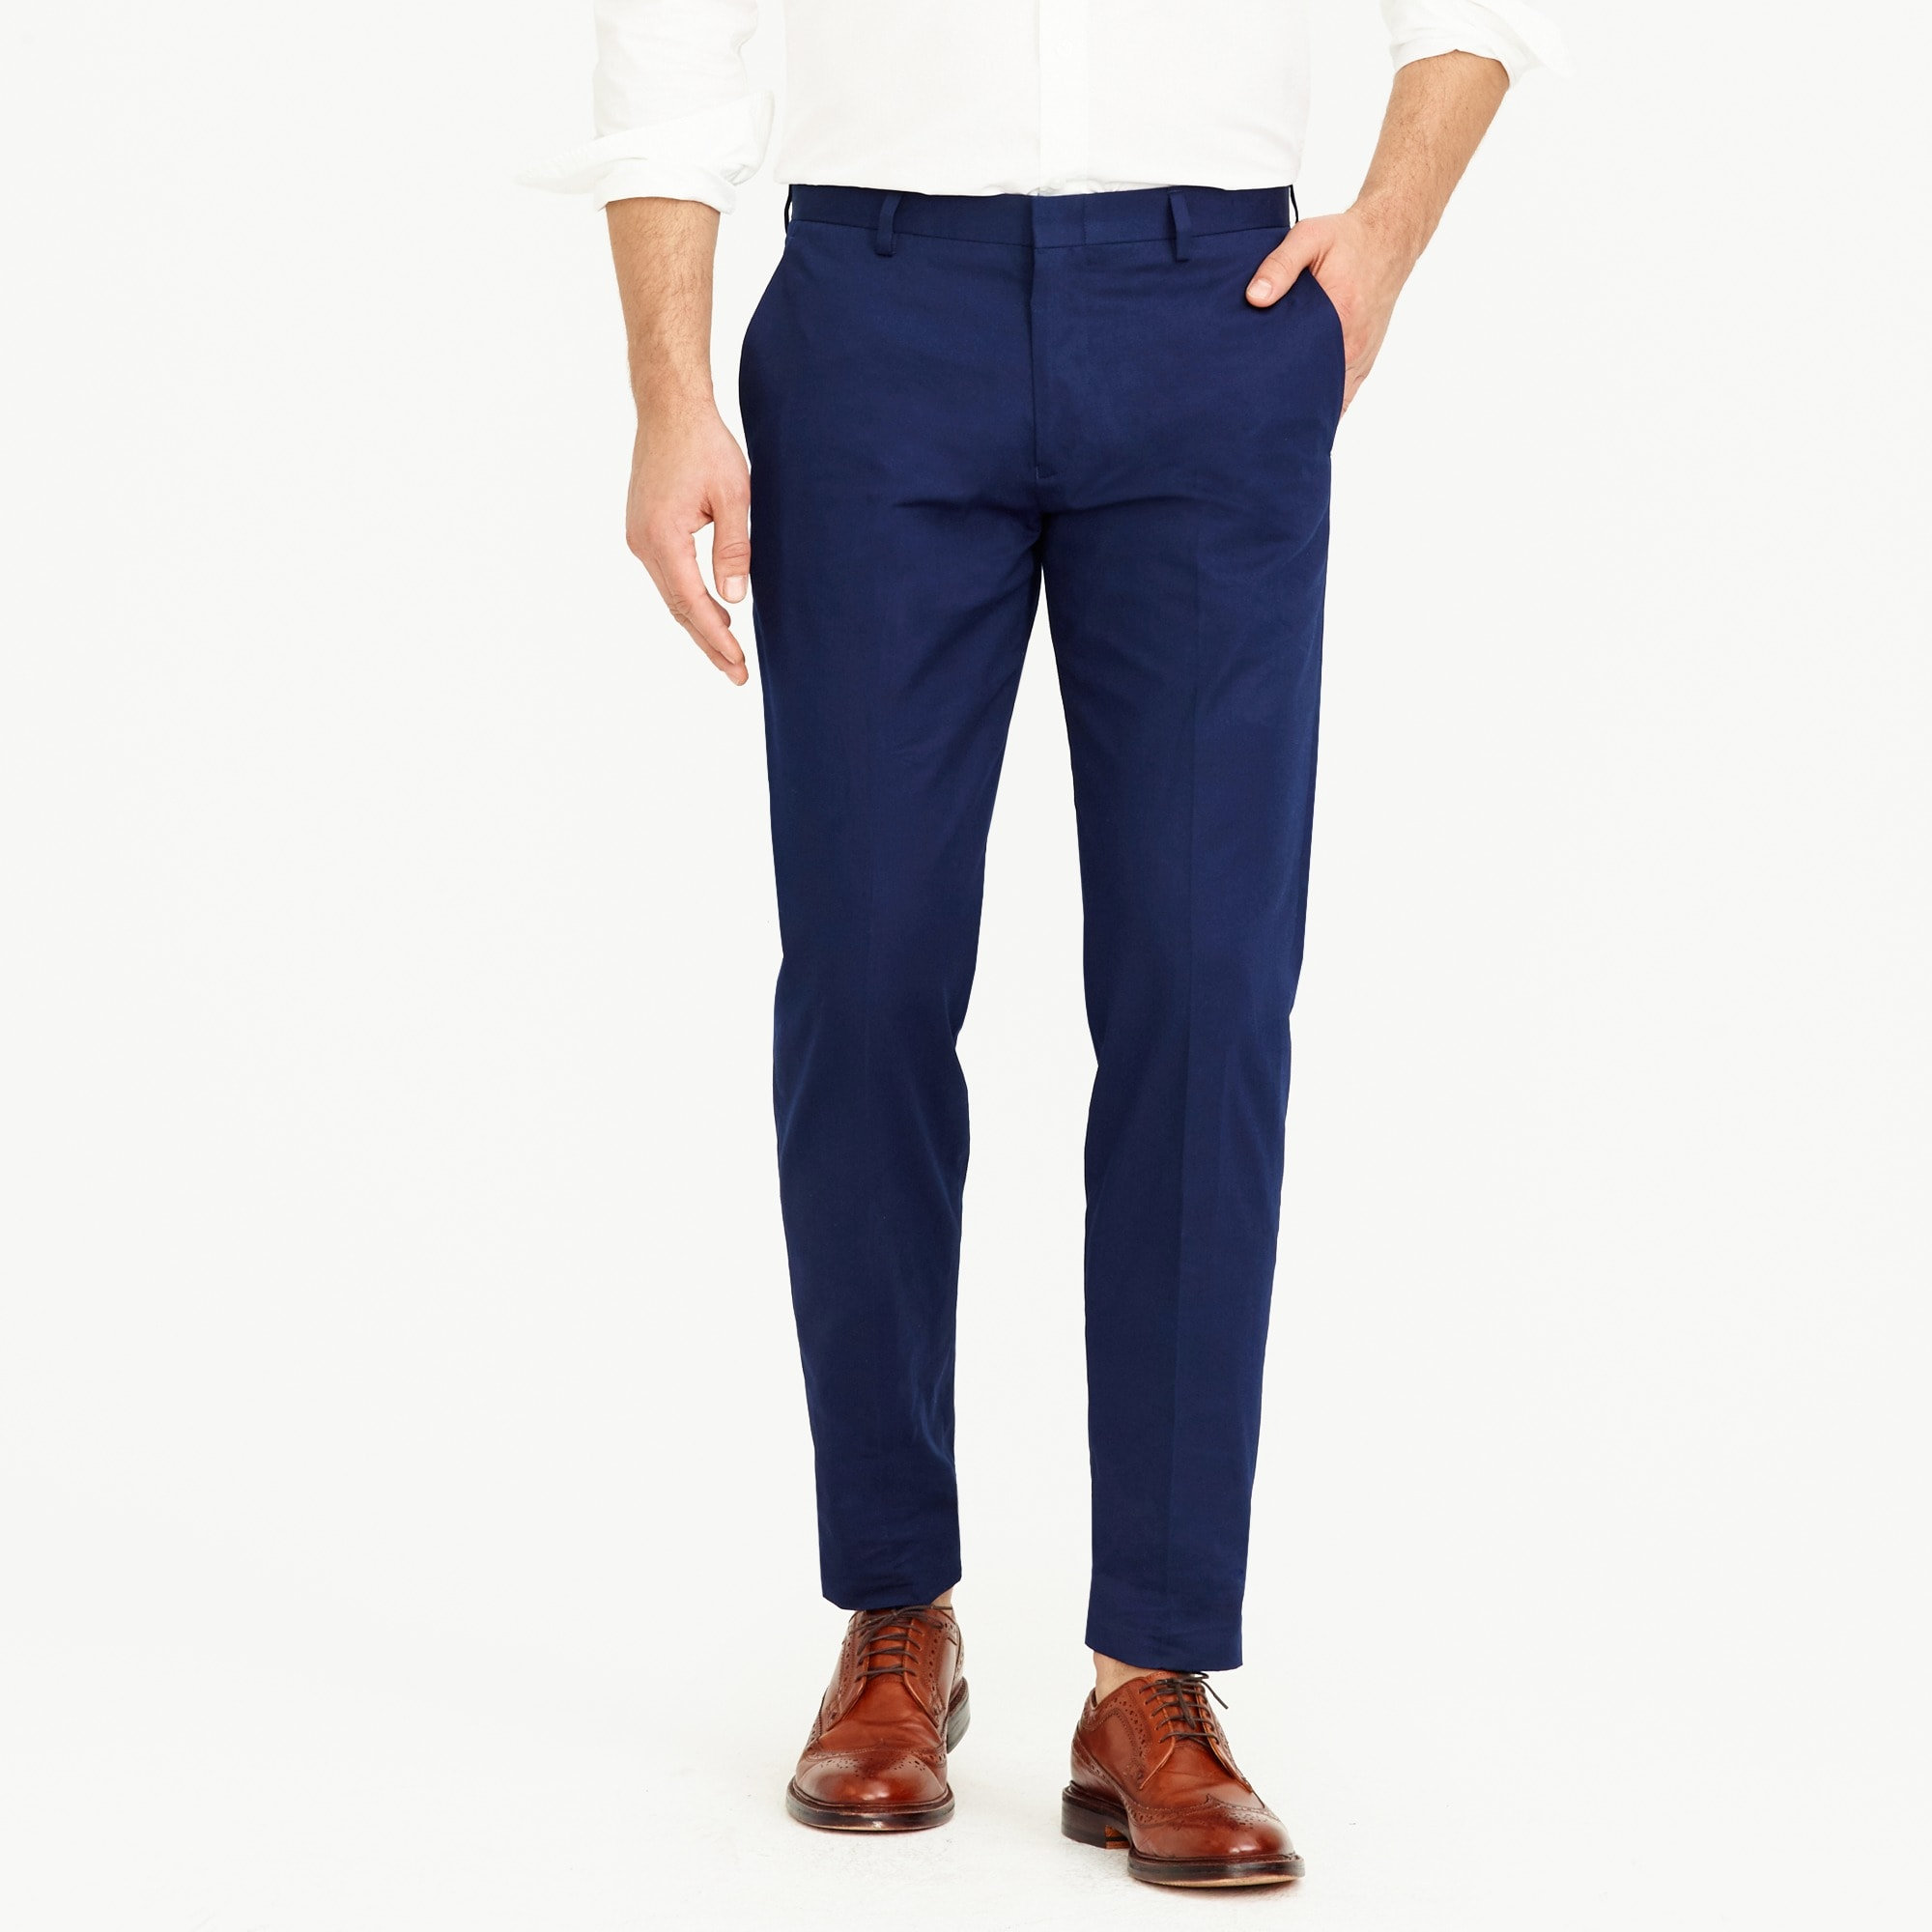 Ludlow suit pant in Italian chino men pants c